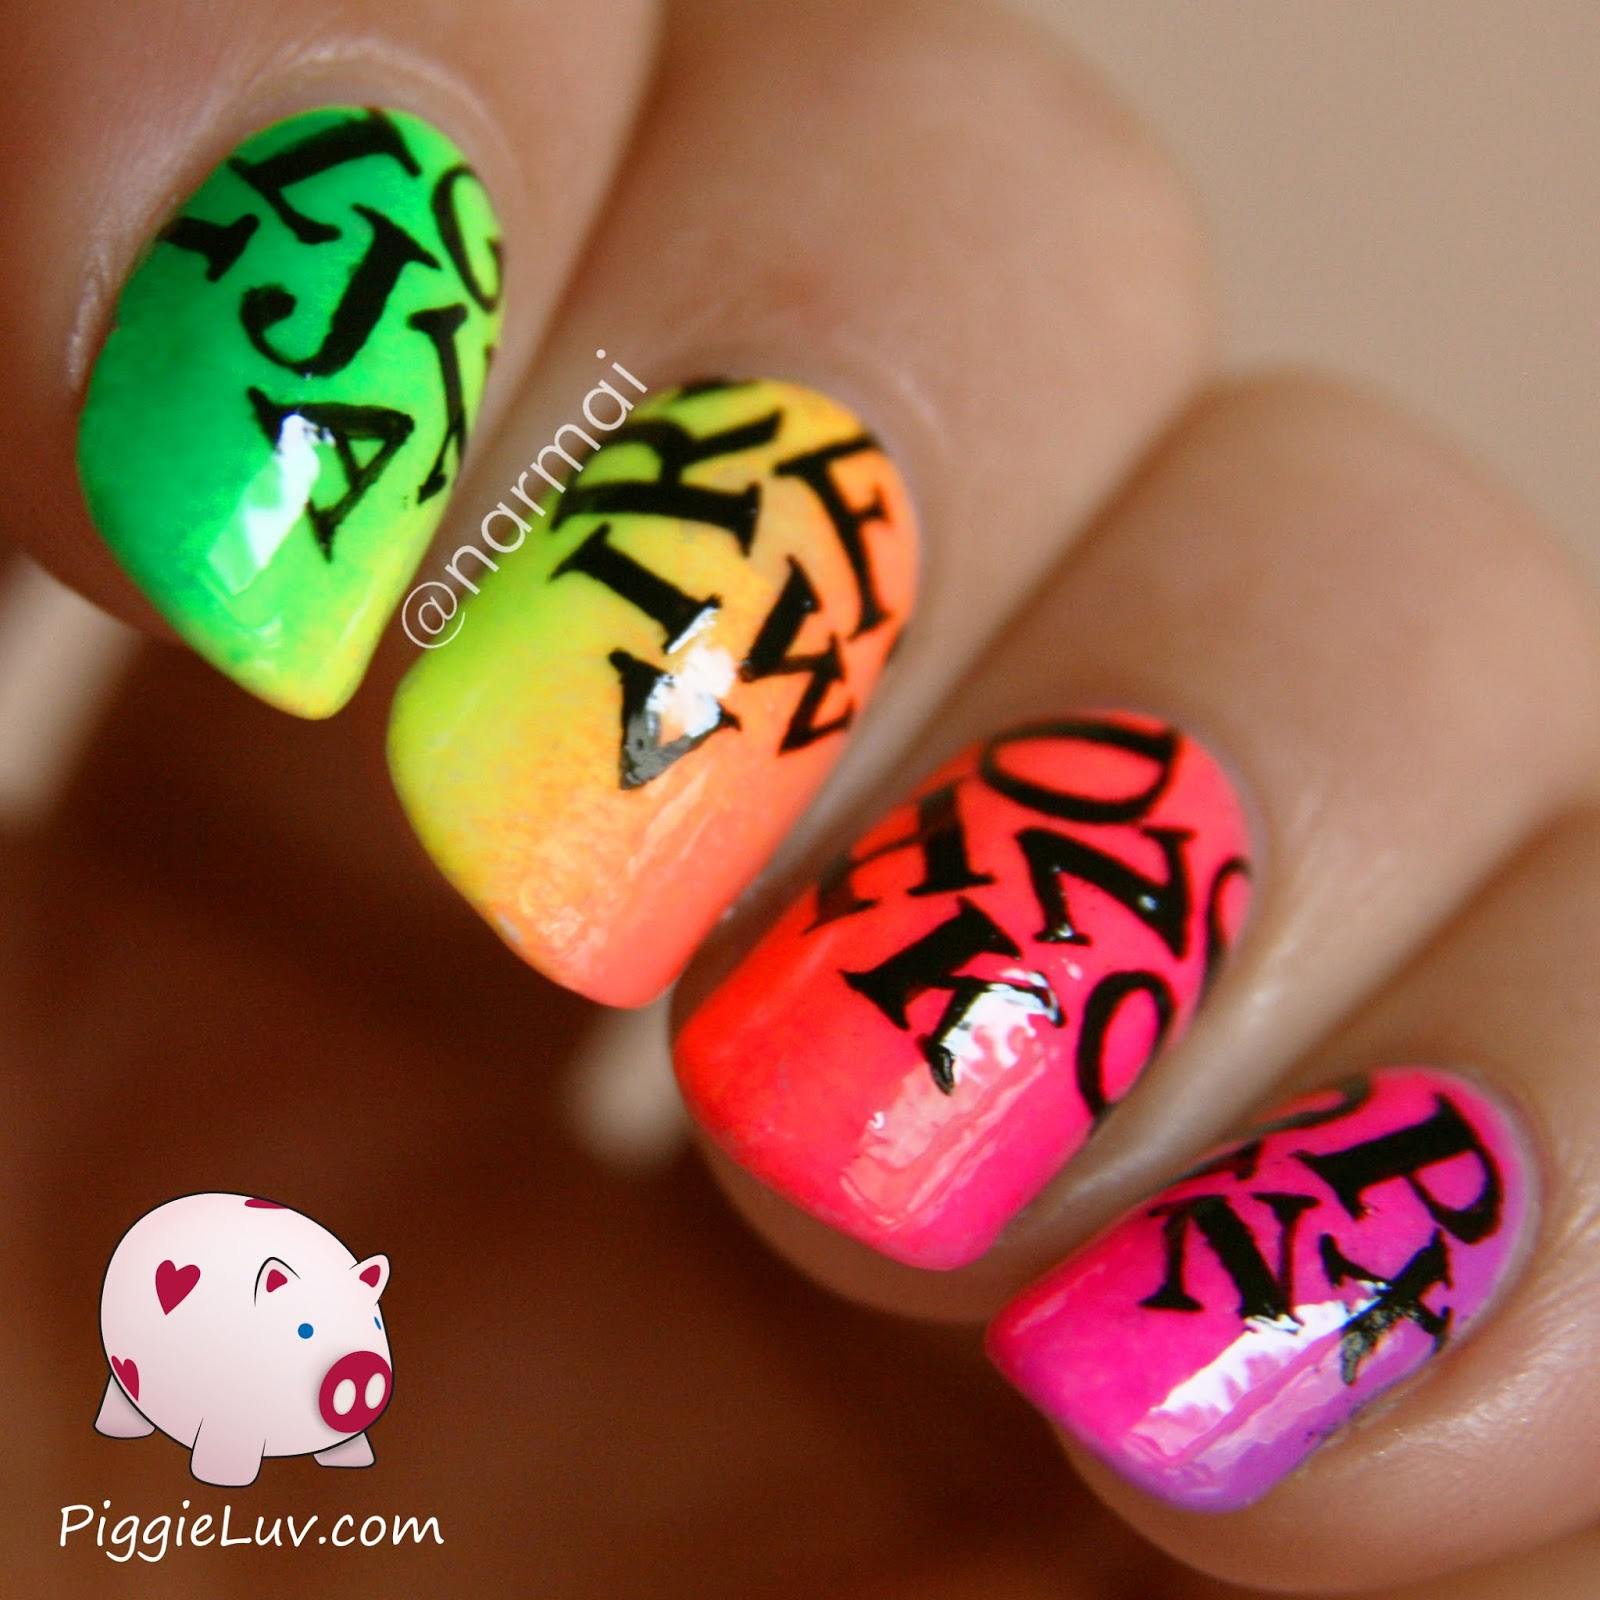 Nail Designs With Letters